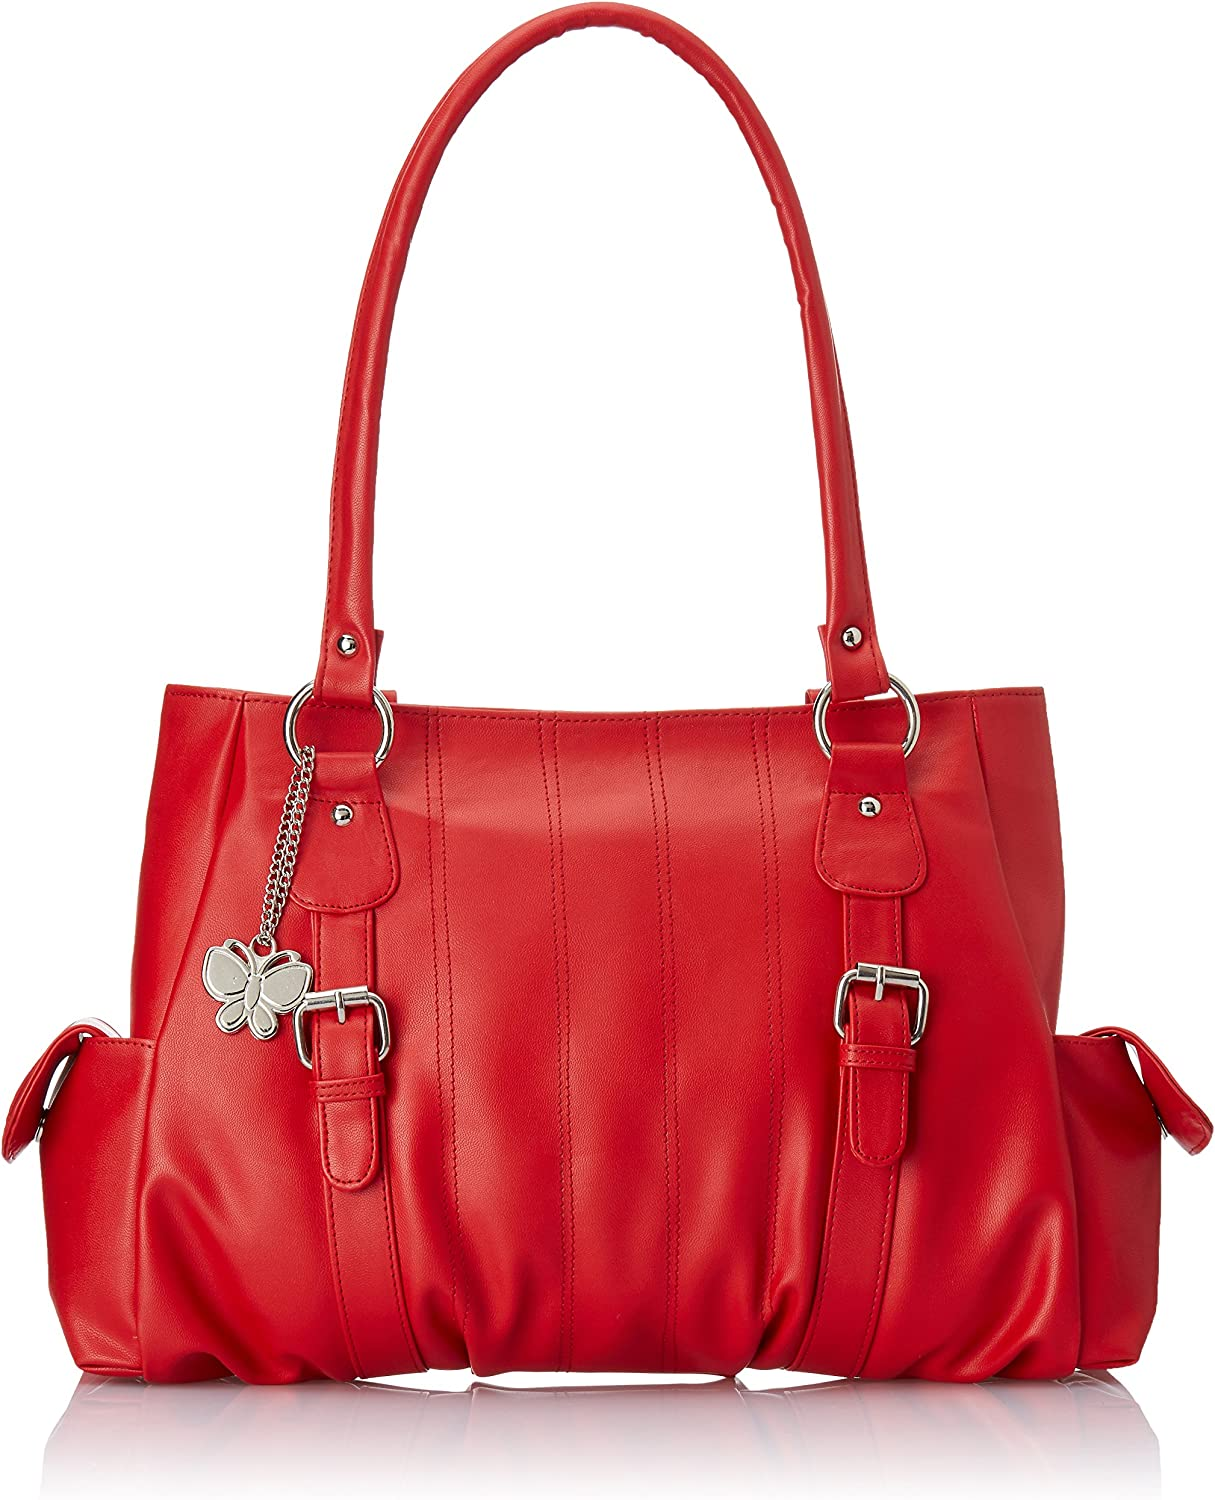 Butterflies Women's Handbag (Red) (BNS 0406 RD)